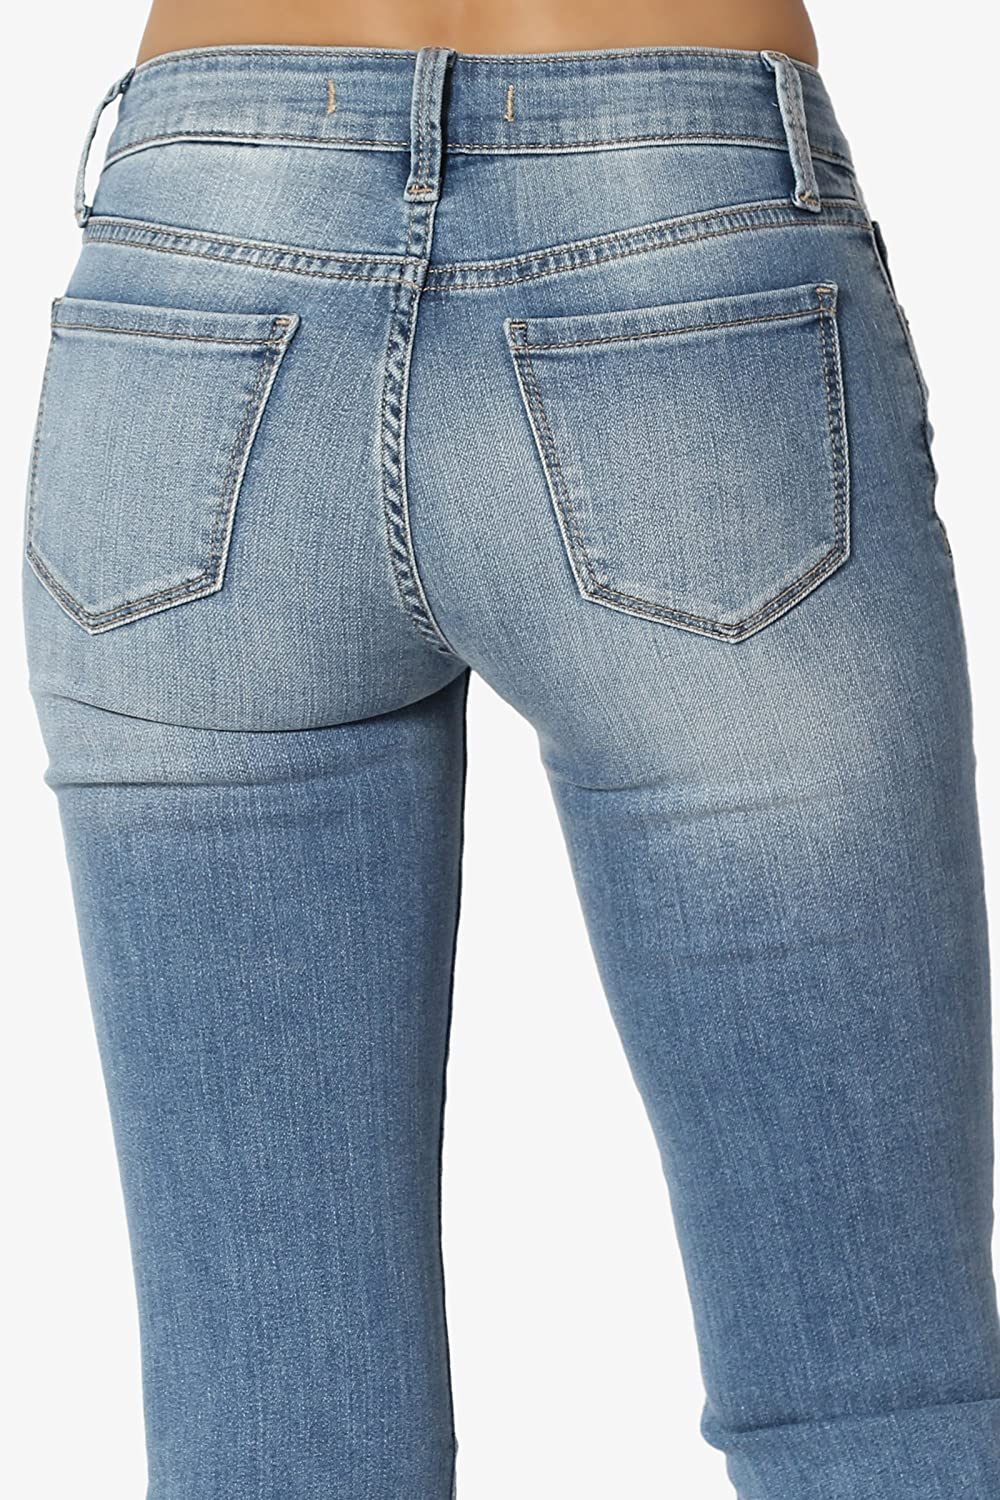 Themogan Womens Basic Slim Bootcut Jeans Flare Pants 03xl At 10 Lover Amazon Store